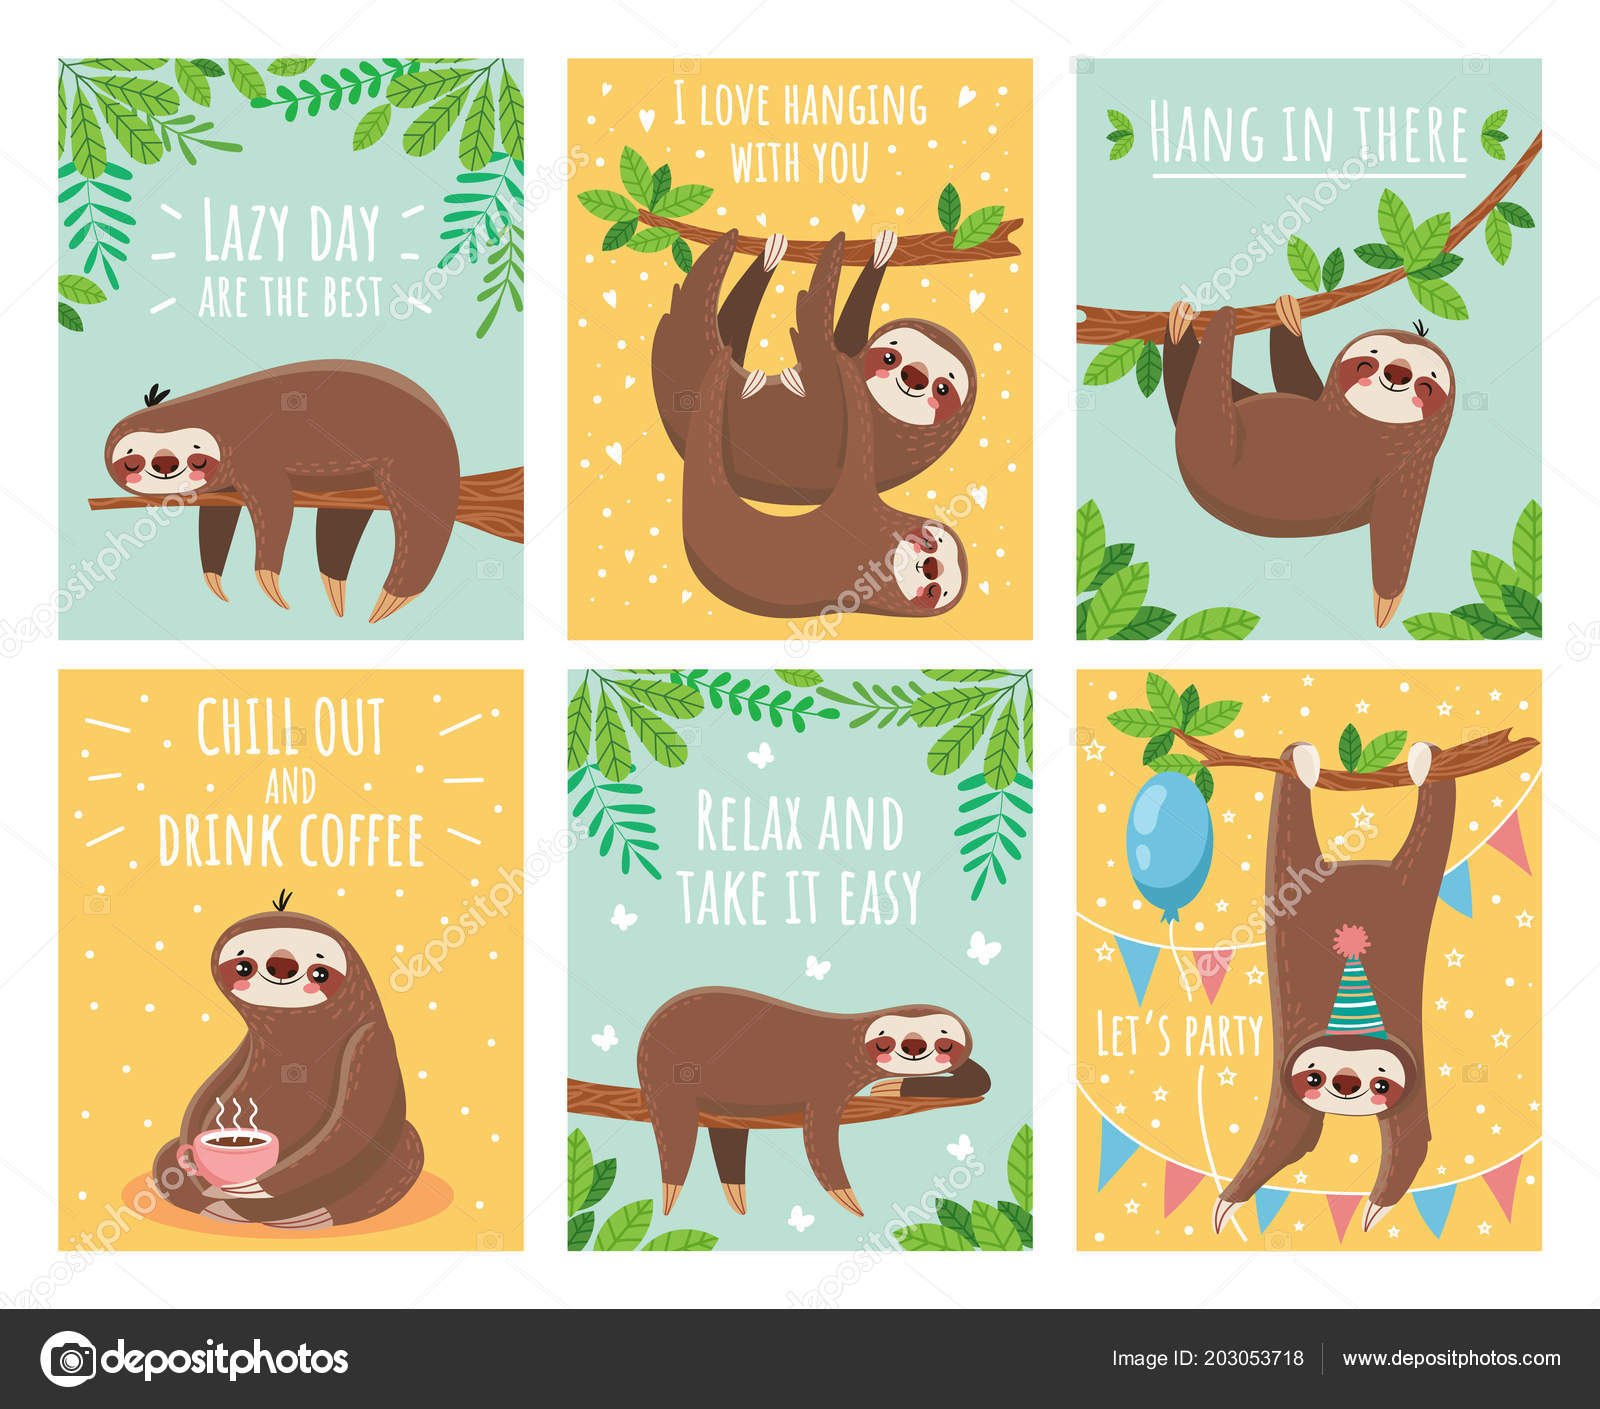 Greeting Card With Lazy Sloth Cartoon Cute Sloths Cards With